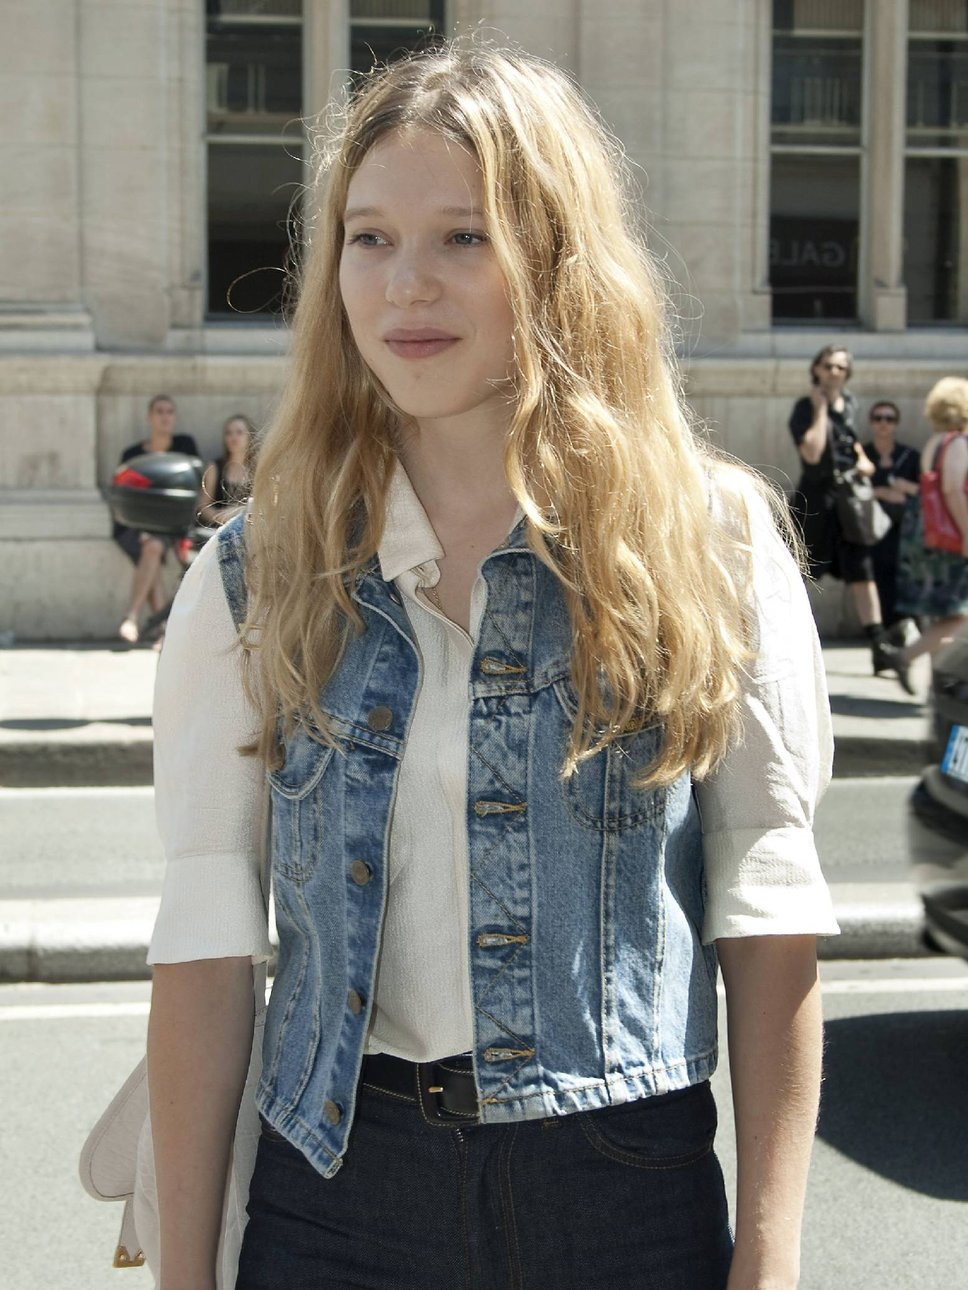 Lea Seydoux In Elle Magazine France February 2014 Issue: 301 Moved Permanently